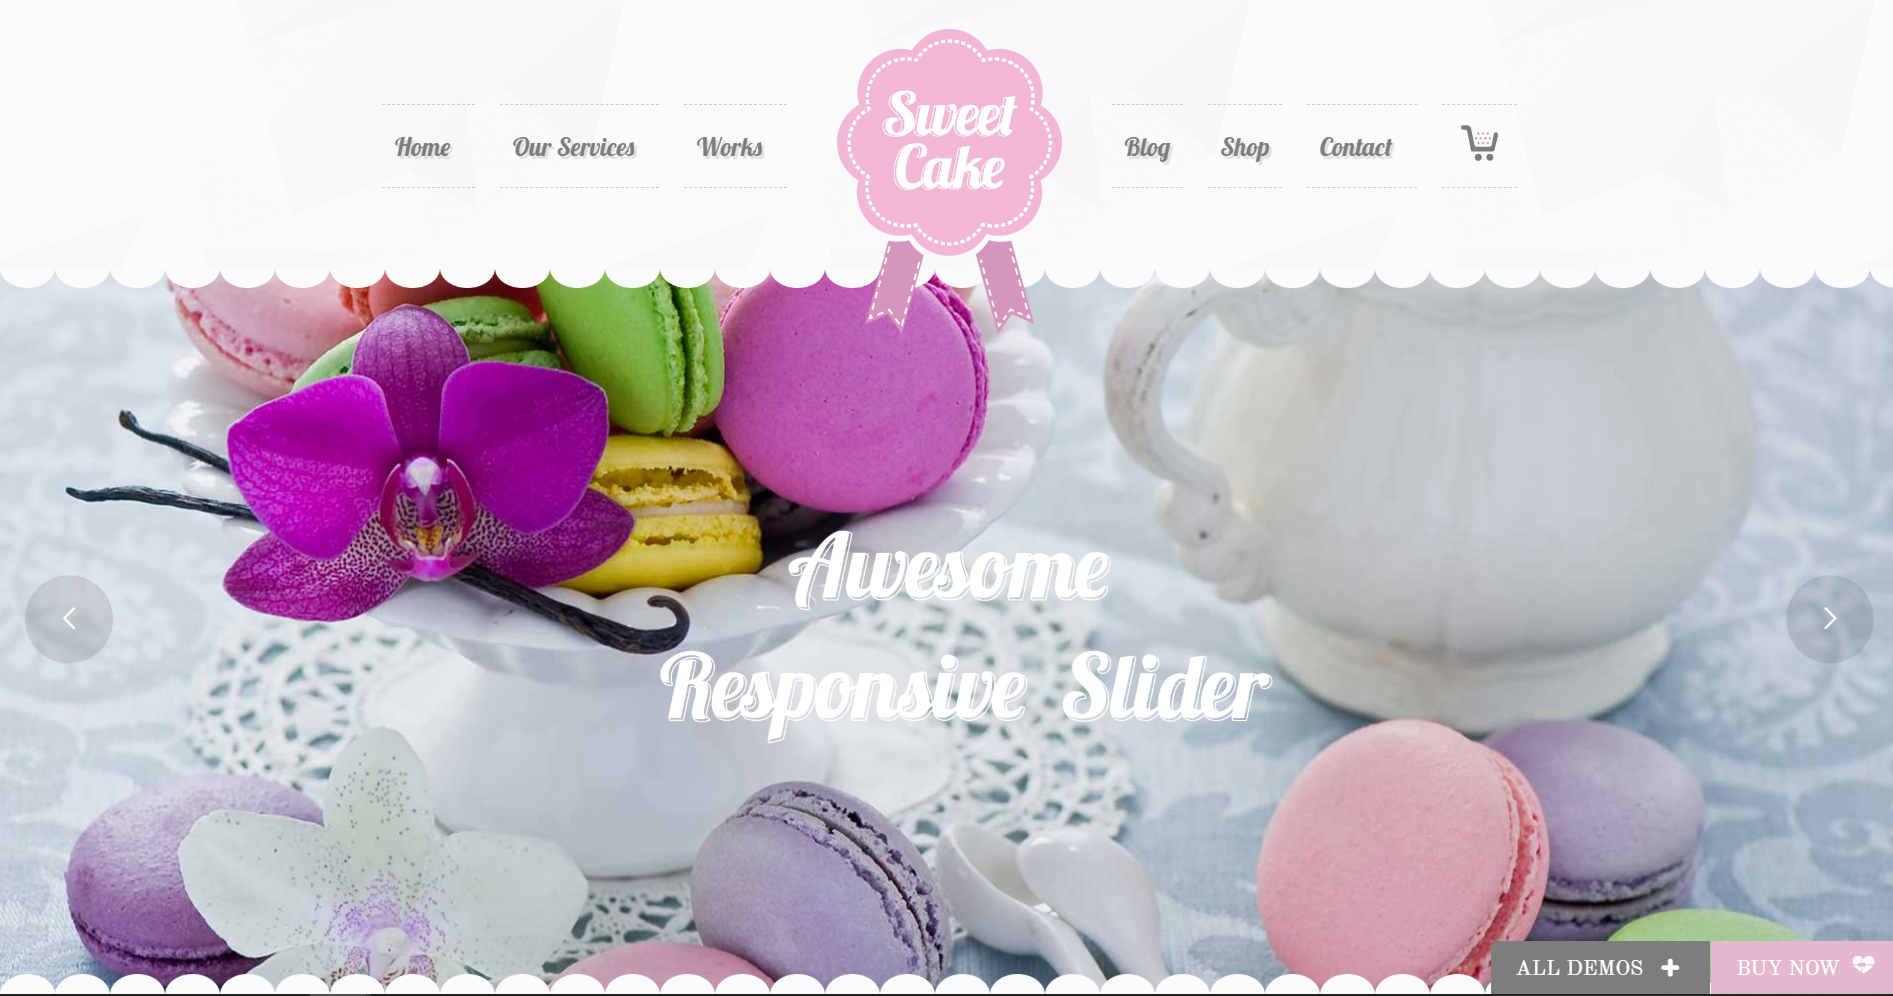 26. Sweet Cake - WP Theme for Bakery Yogurt Chocolate & Coffee Shop